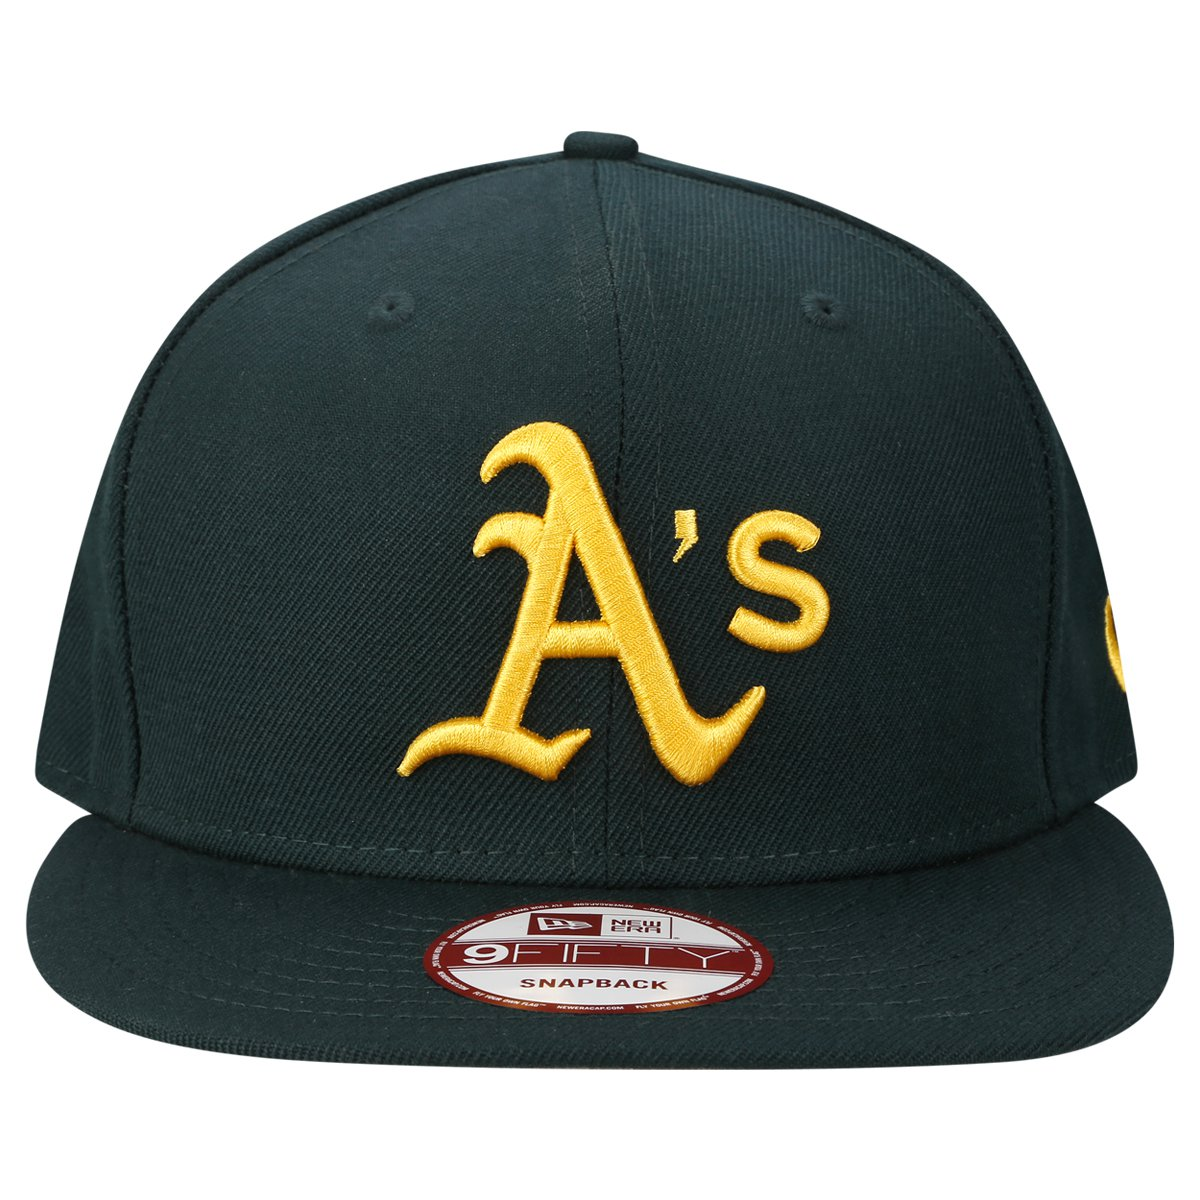 e2427a098d74a Boné New Era 950 Basic Oakland Athletics - Compre Agora | Netshoes